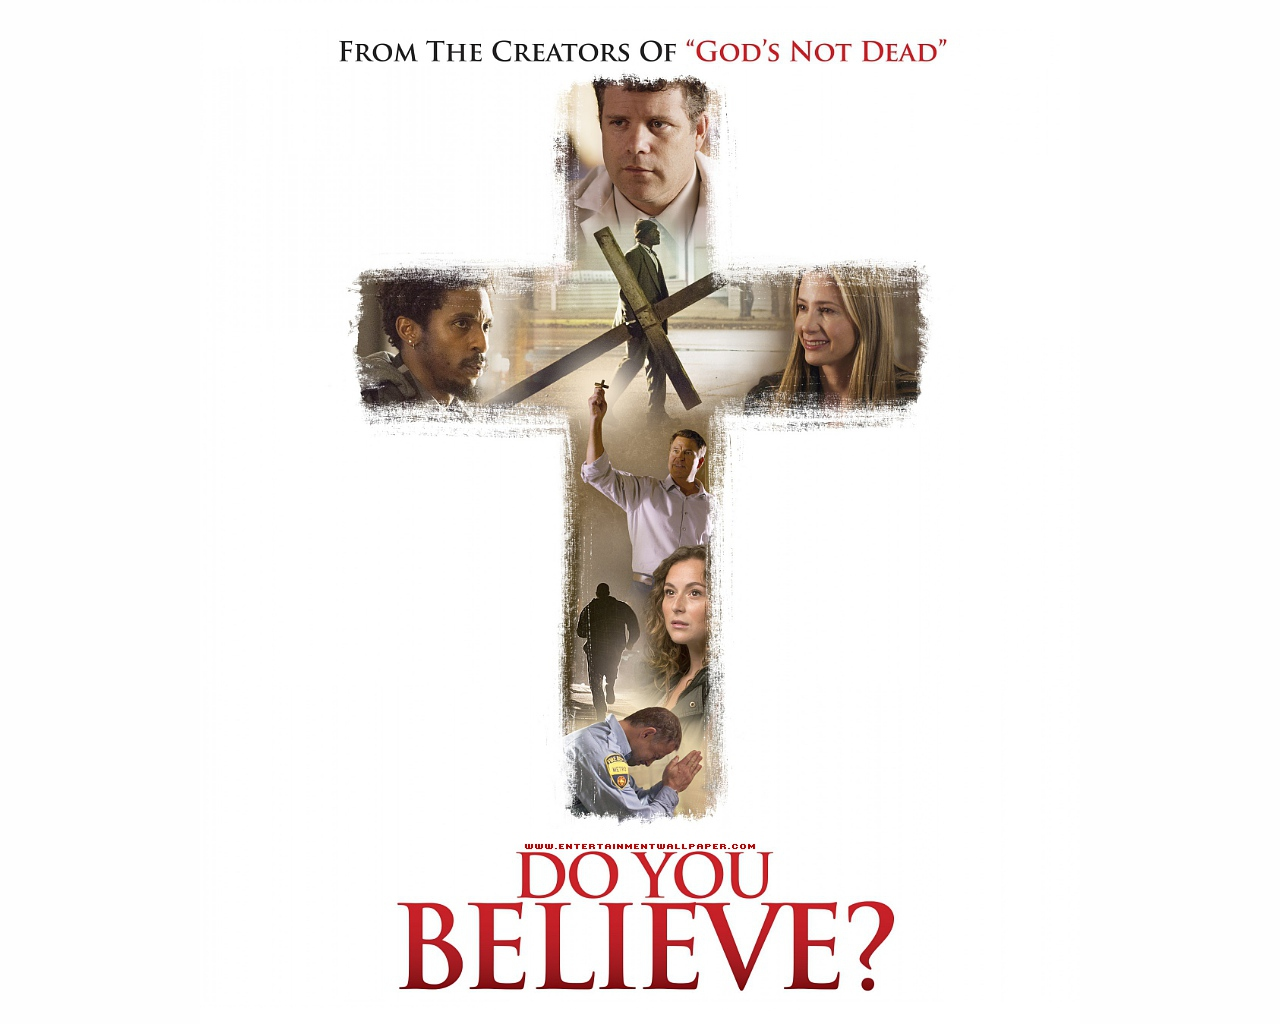 do you believe wallpaper 10045551 size 1280x1024 more do you believe 1280x1024